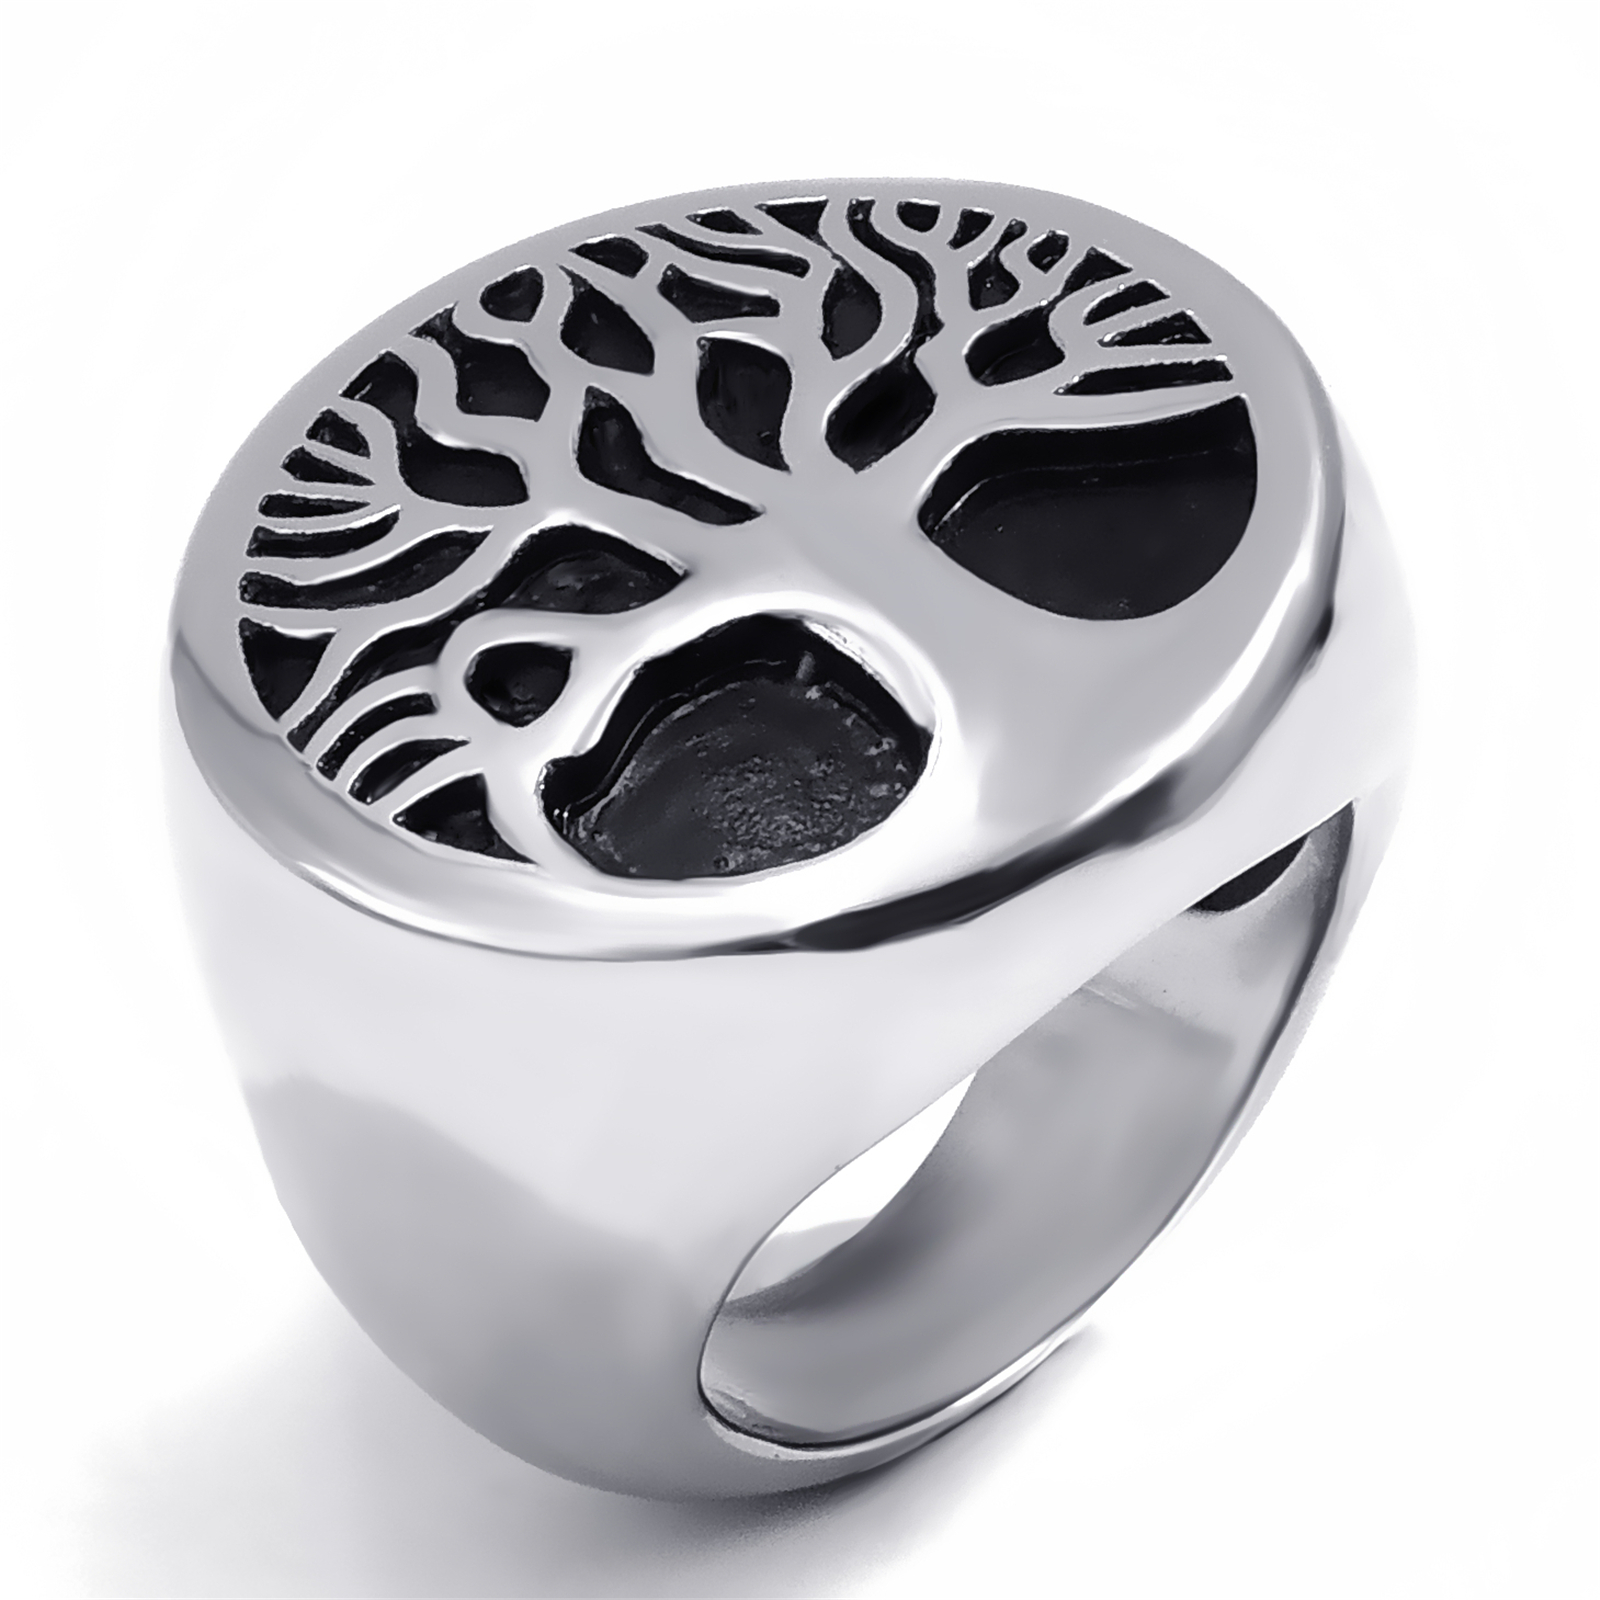 Mens Boys Stainless Steel Ring Band Tree of Life Silver Tone Fashion Jewelry Size 8-13 gj303 rhinestones 316l stainless steel couple s ring black silver size 9 7 2 pcs